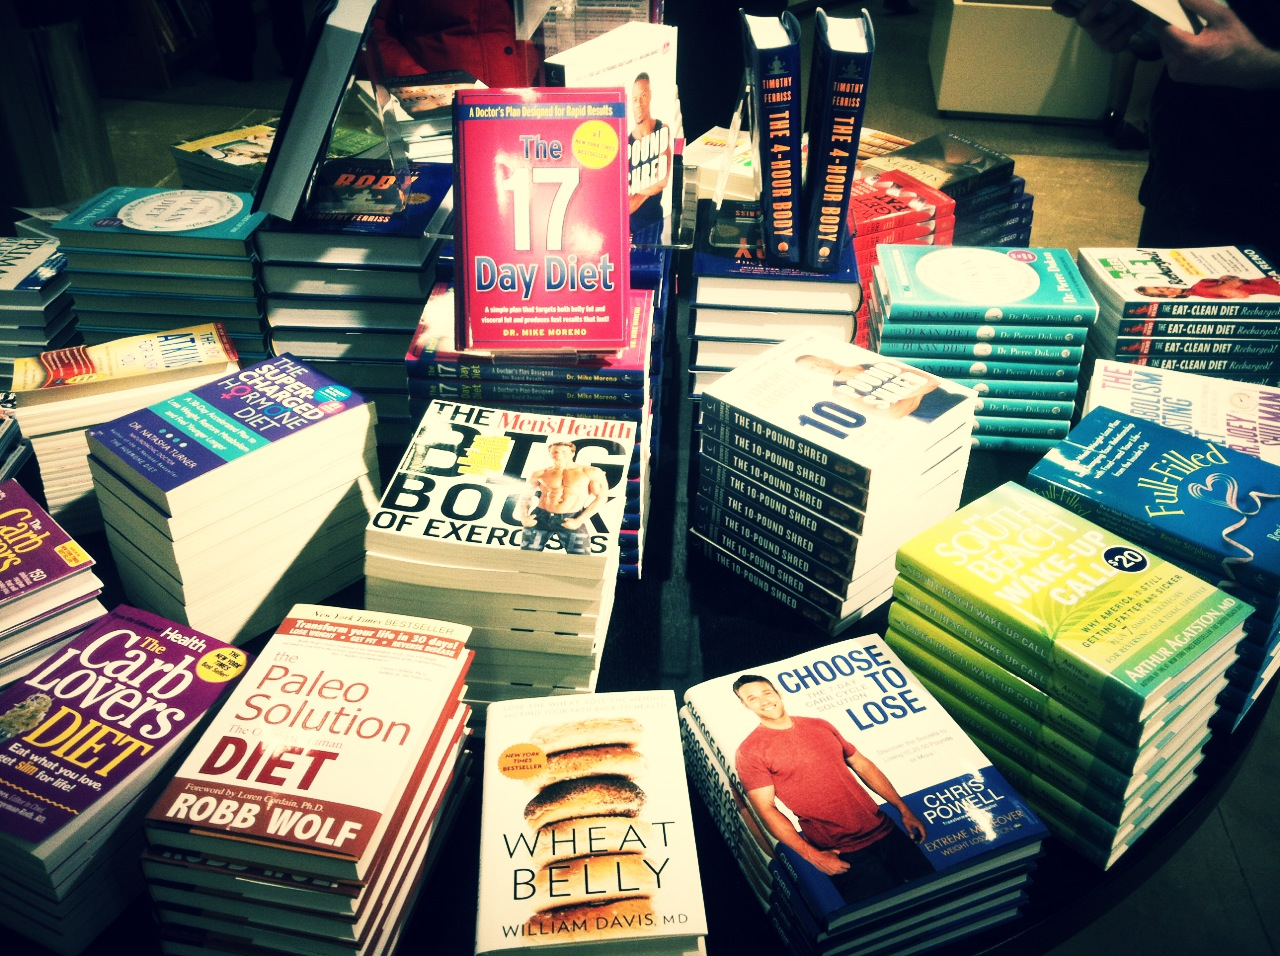 Bookstore diet books.jpg?ixlib=rails 1.1